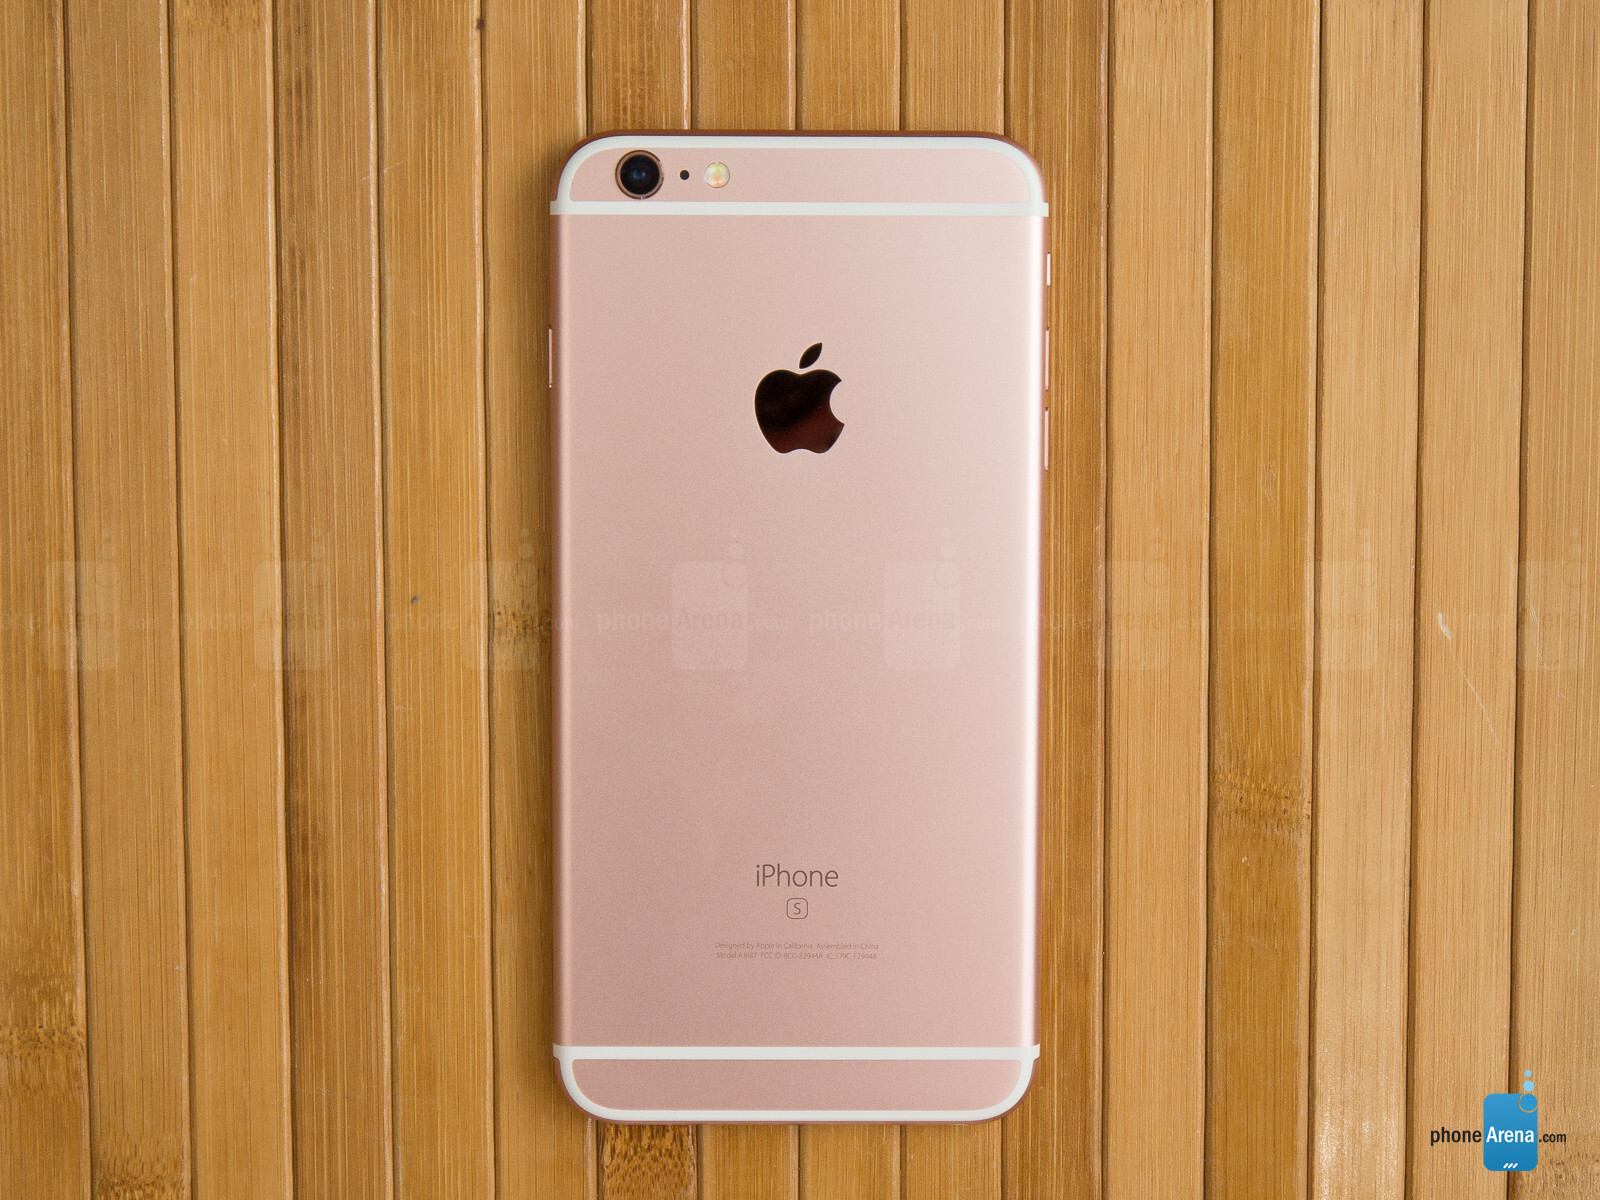 Apple iPhone 6s Plus Review - Call Quality, Battery and Conclusion